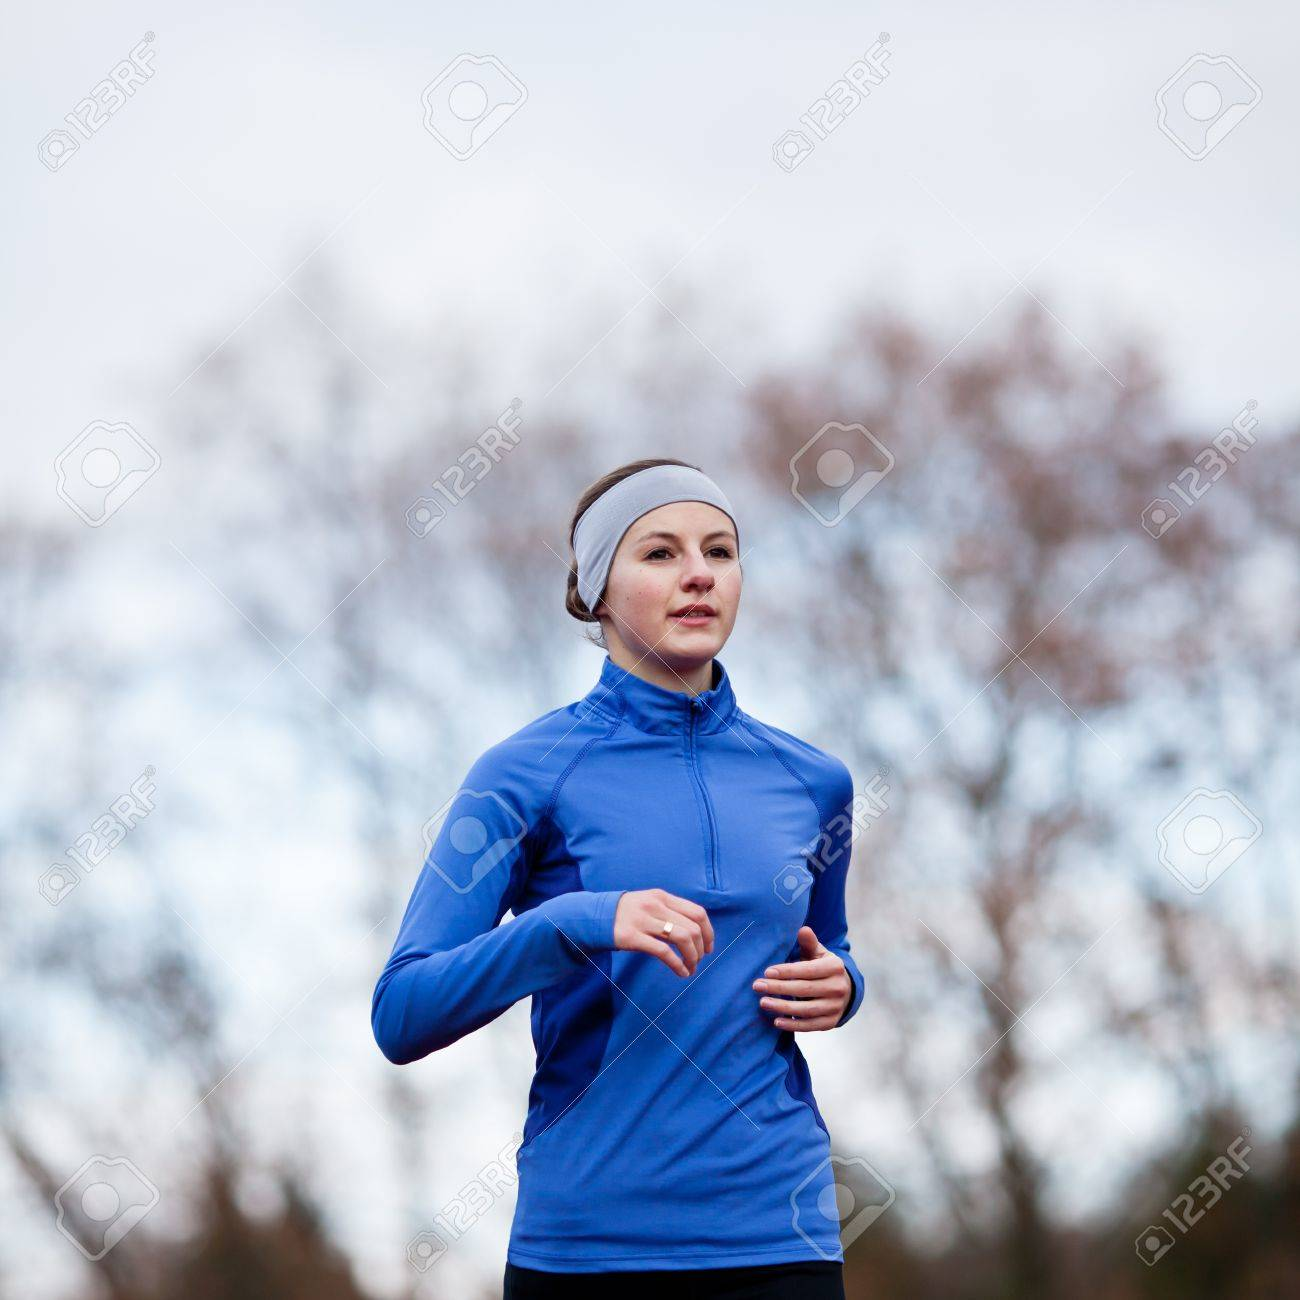 Portrait of a woman running against against blue sky Stock Photo - 11940440